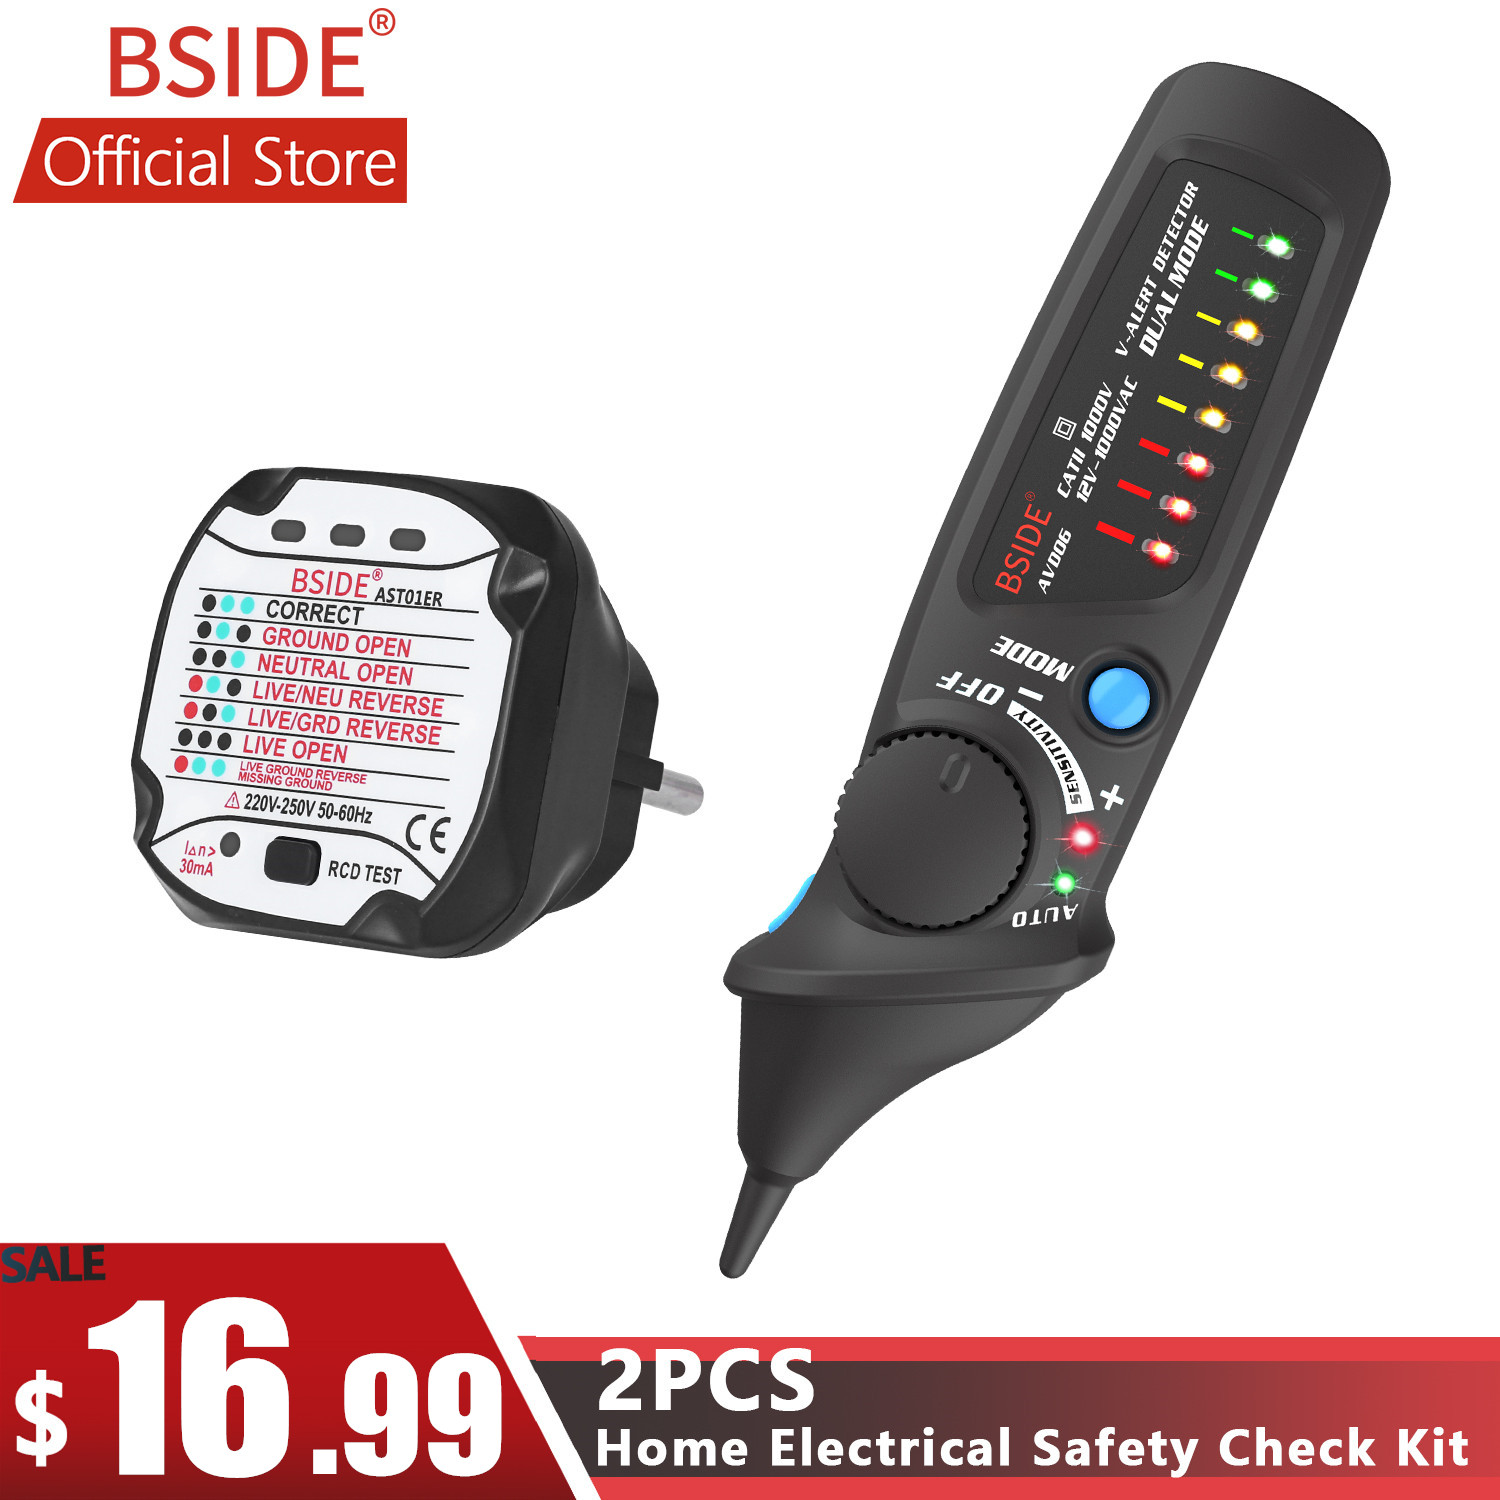 BSIDE Dual Mode Non-Contact AC Voltage Detector Tester + Socket Wall Power Outlet Tester Circuit Polarity Breaker Finder KITBSIDE Dual Mode Non-Contact AC Voltage Detector Tester + Socket Wall Power Outlet Tester Circuit Polarity Breaker Finder KIT